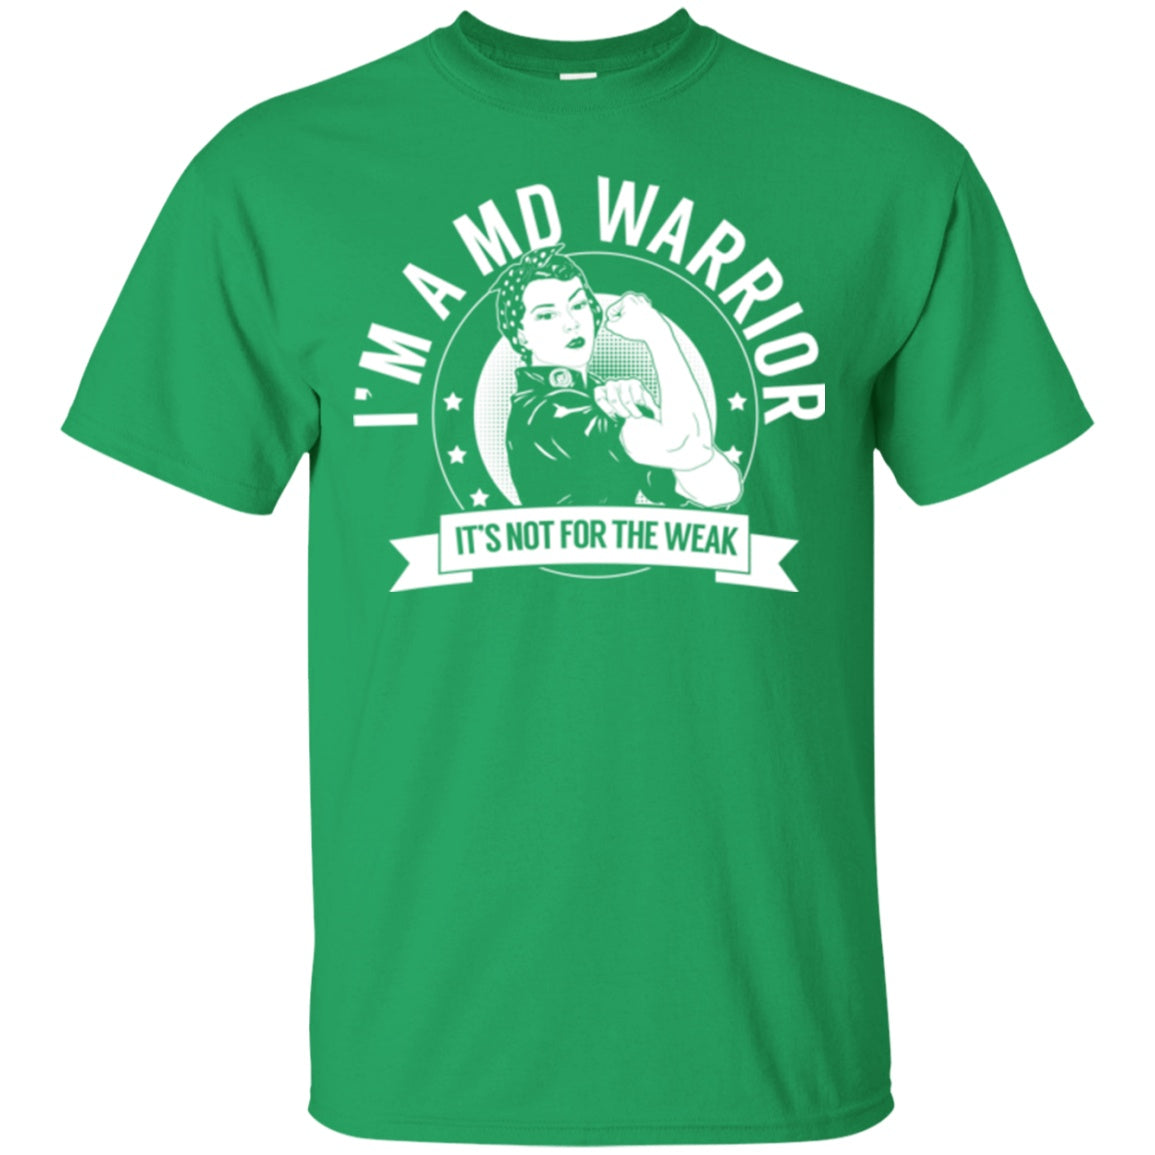 0606e102 ... T-Shirts - Muscular Dystrophy - MD Warrior Not For The Weak Cotton T-  ...